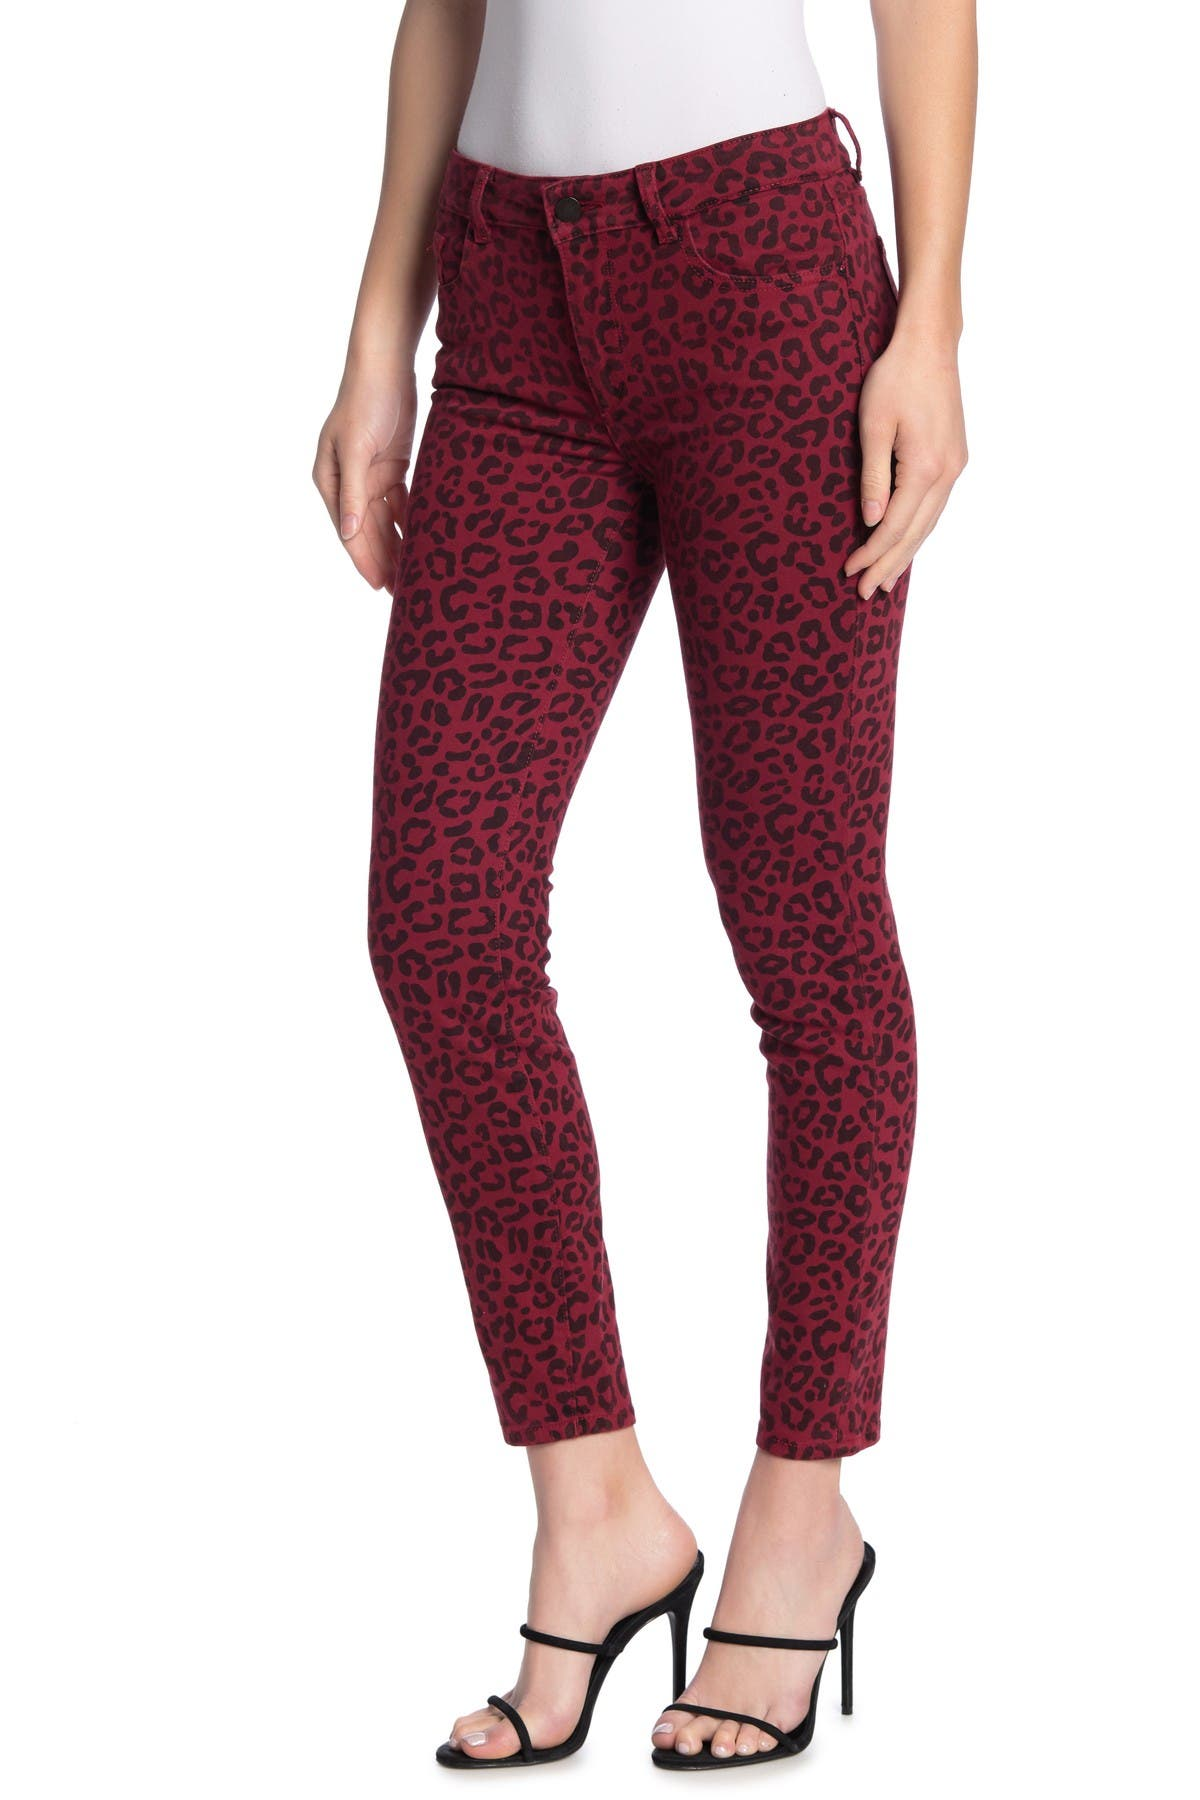 Image of DL1961 Florence Instasculpt Leopard Print Mid Rise Ankle Skinny Jeans